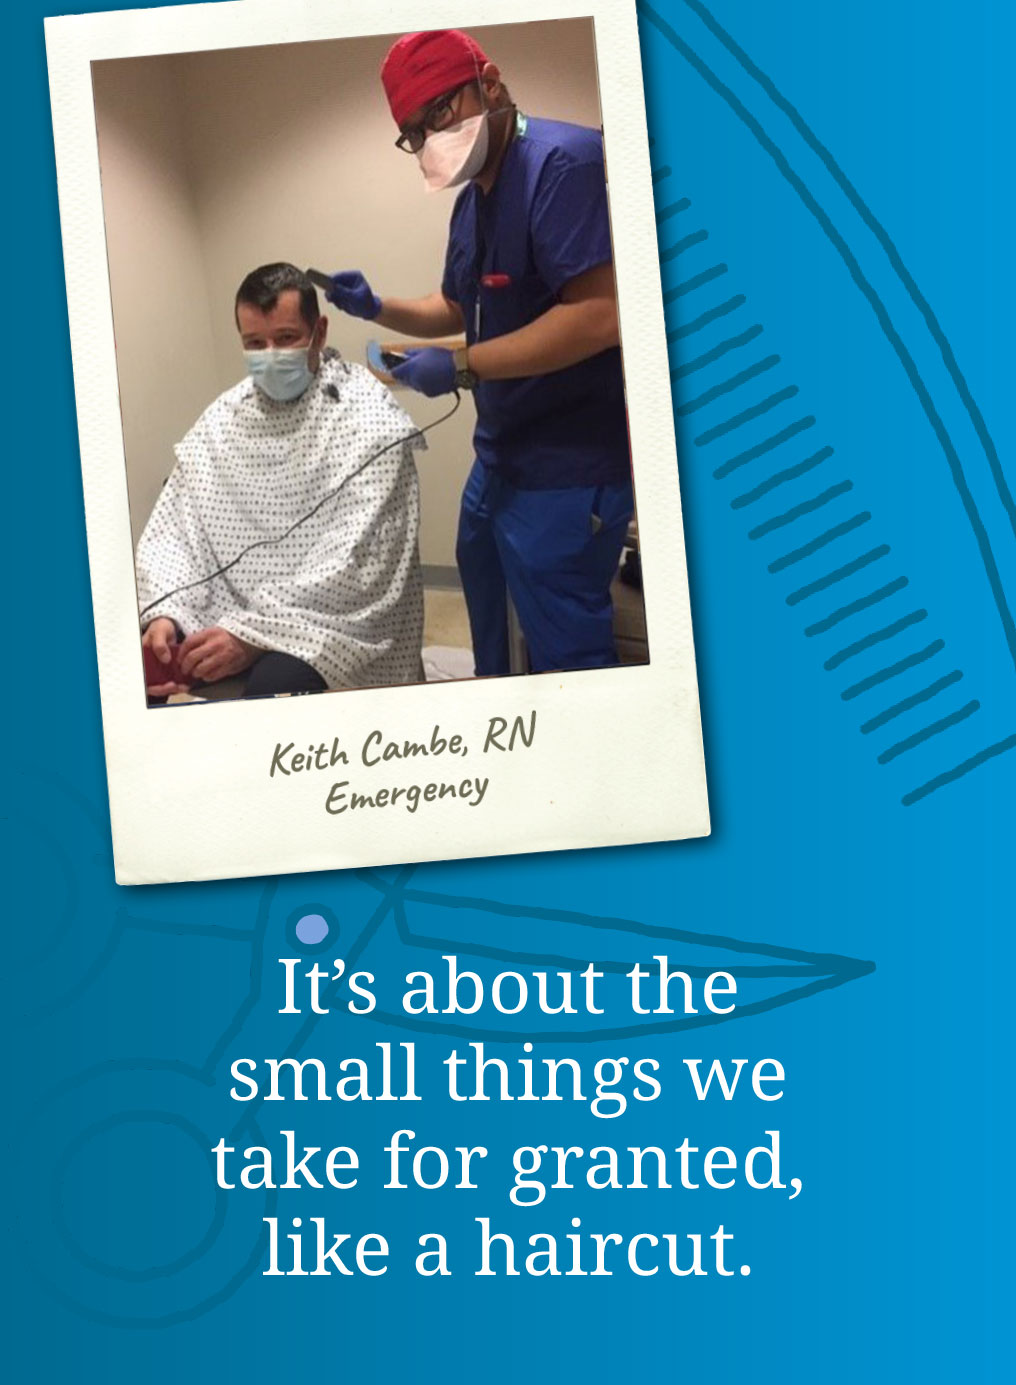 It's about small things we take for granted, like a haircut. Keith Cambe, RN Energency